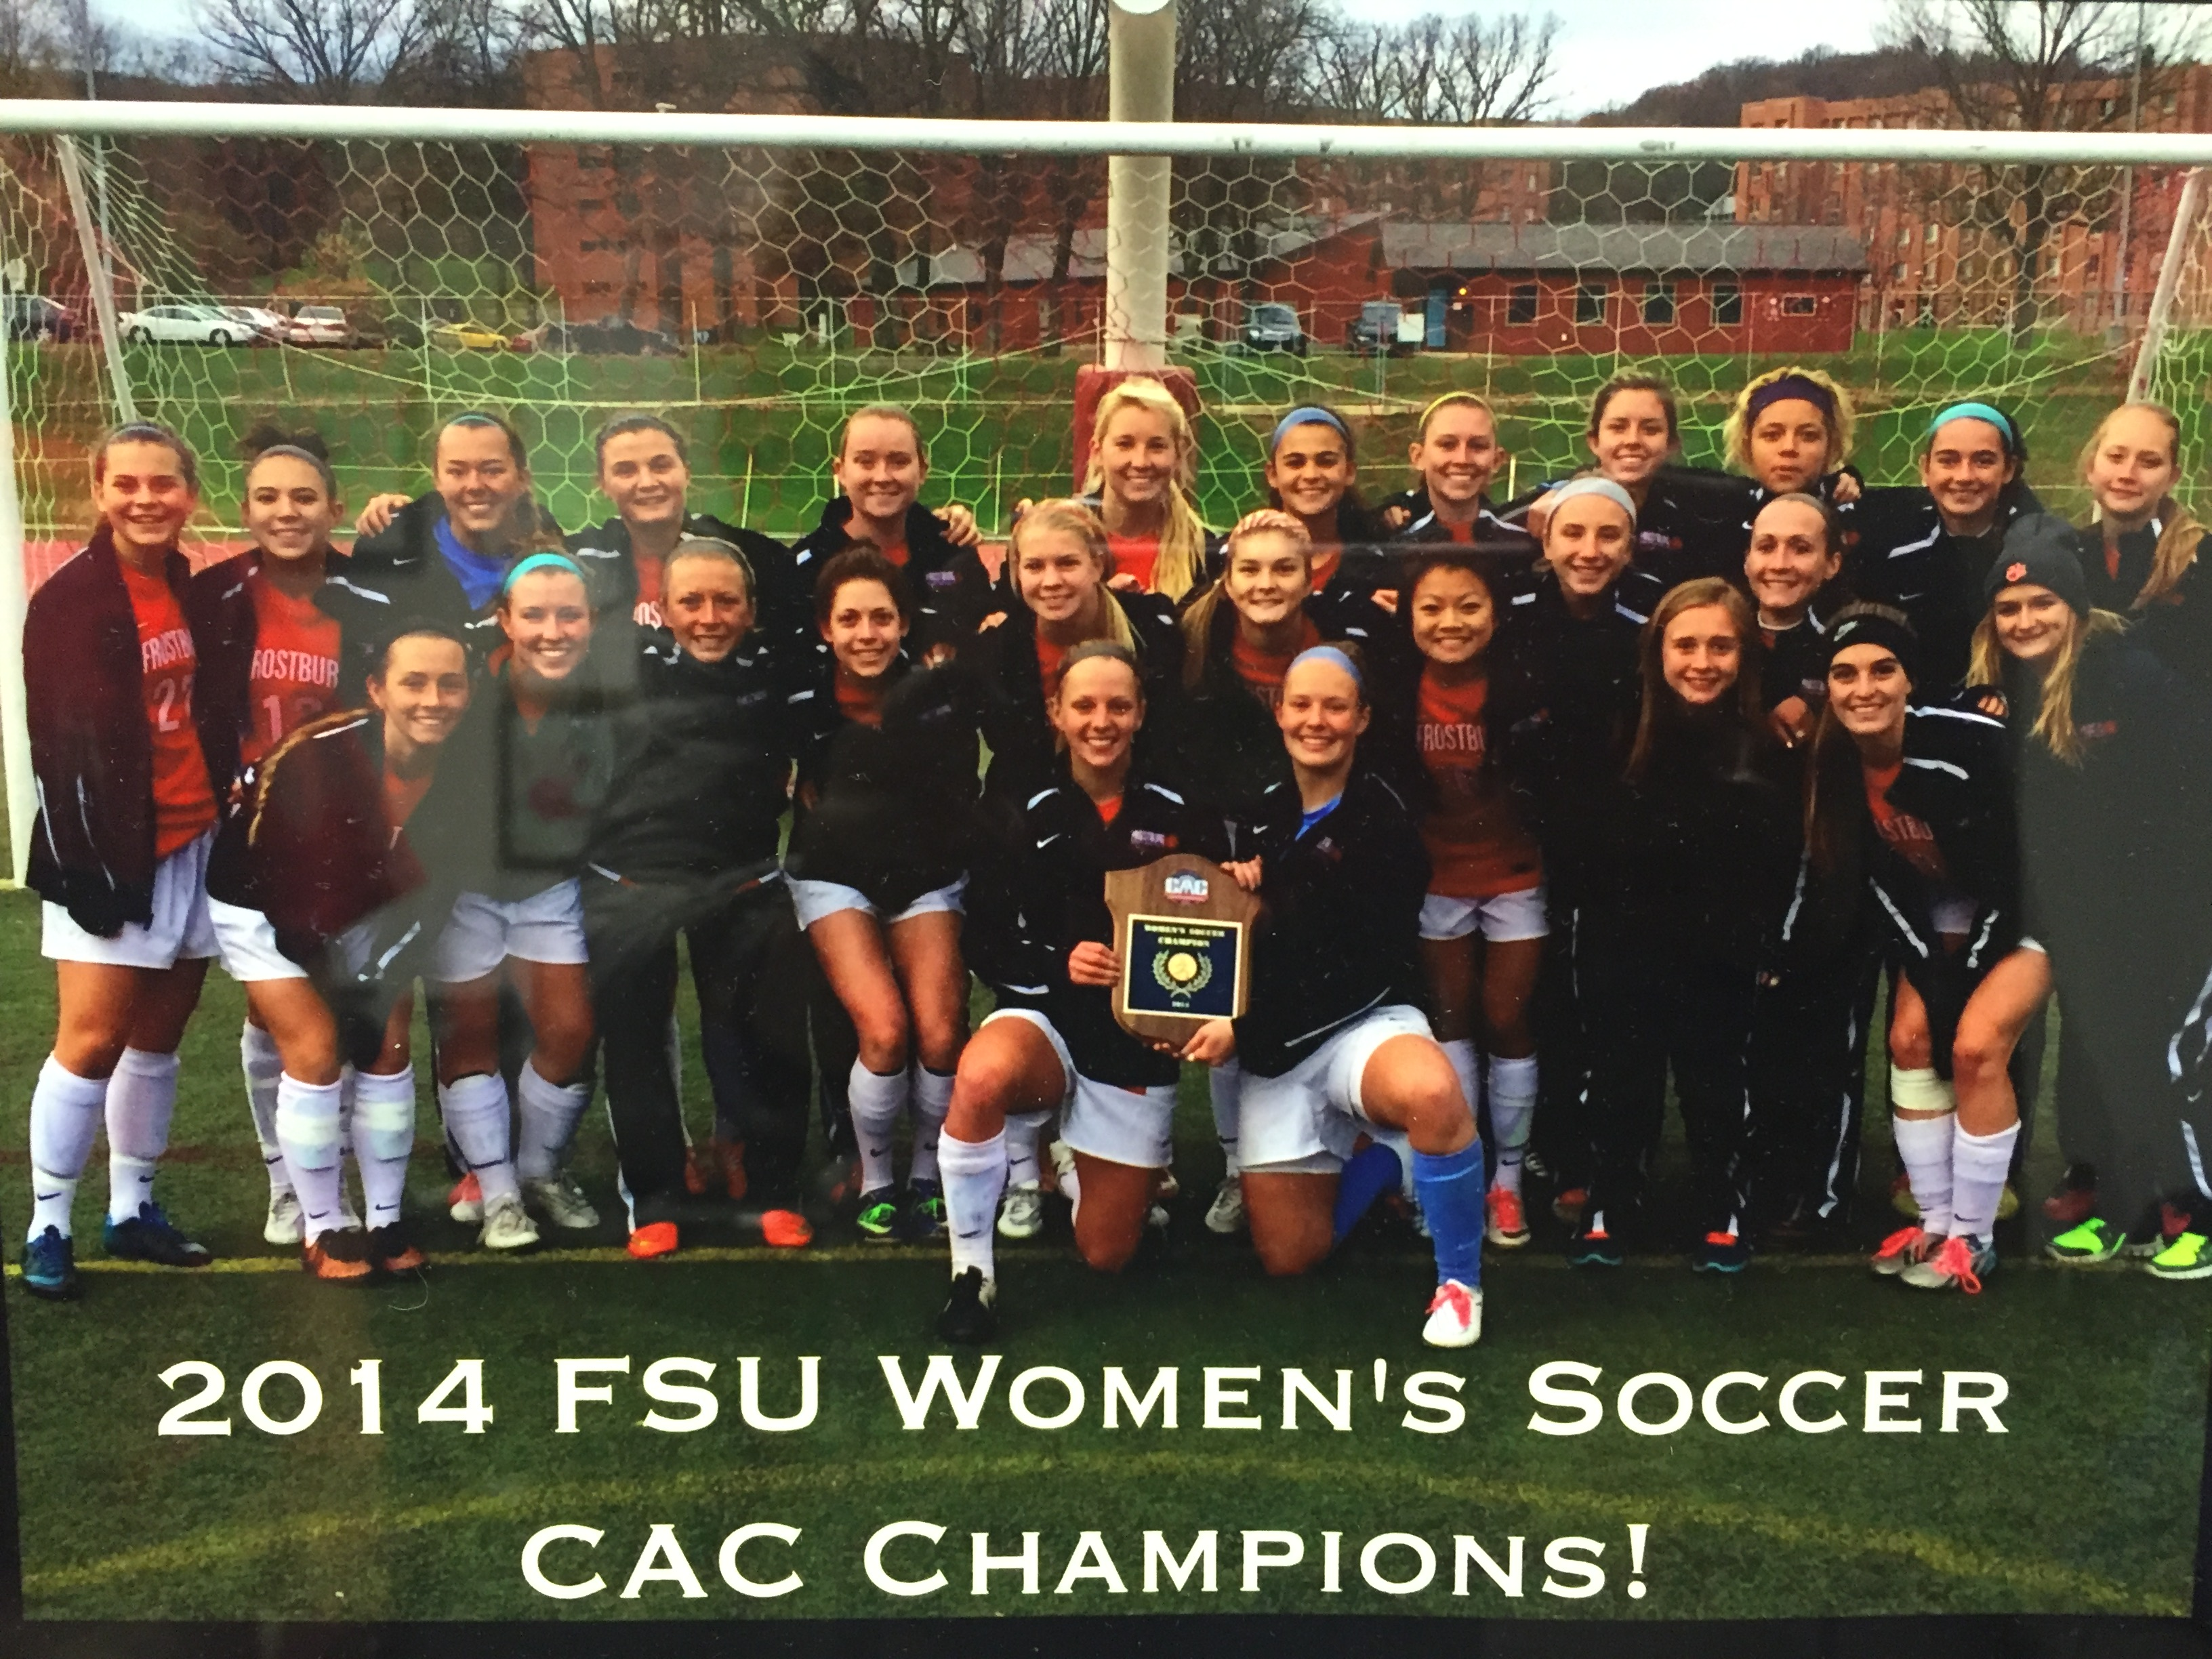 2014 FSU Women's Soccer CAC Champions.  Team's inspiration and goal for this season is to get back, picture is a symbol of motivation.